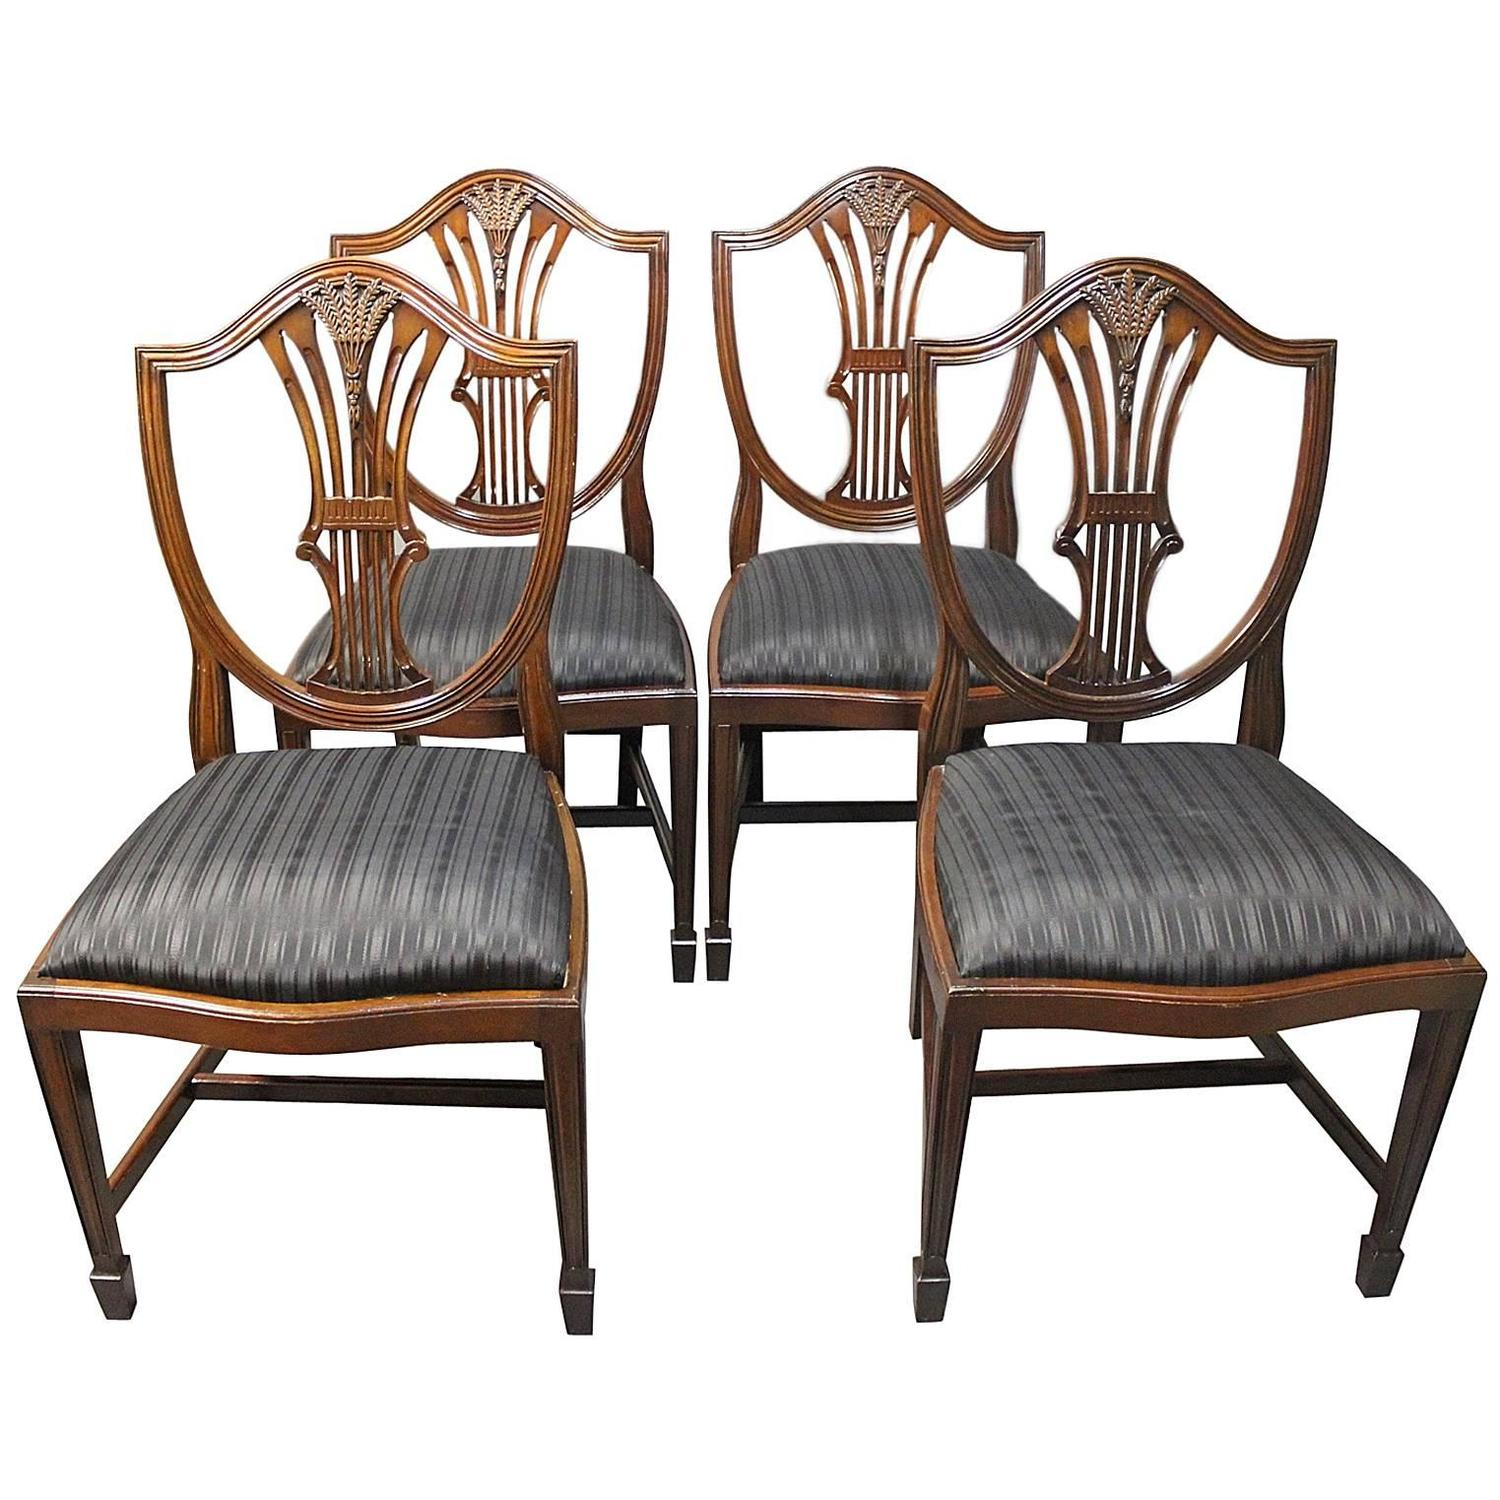 Antique Mahogany Dining Room Furniture: Set Of Four Antique Hepplewhite Dining Room Chairs In